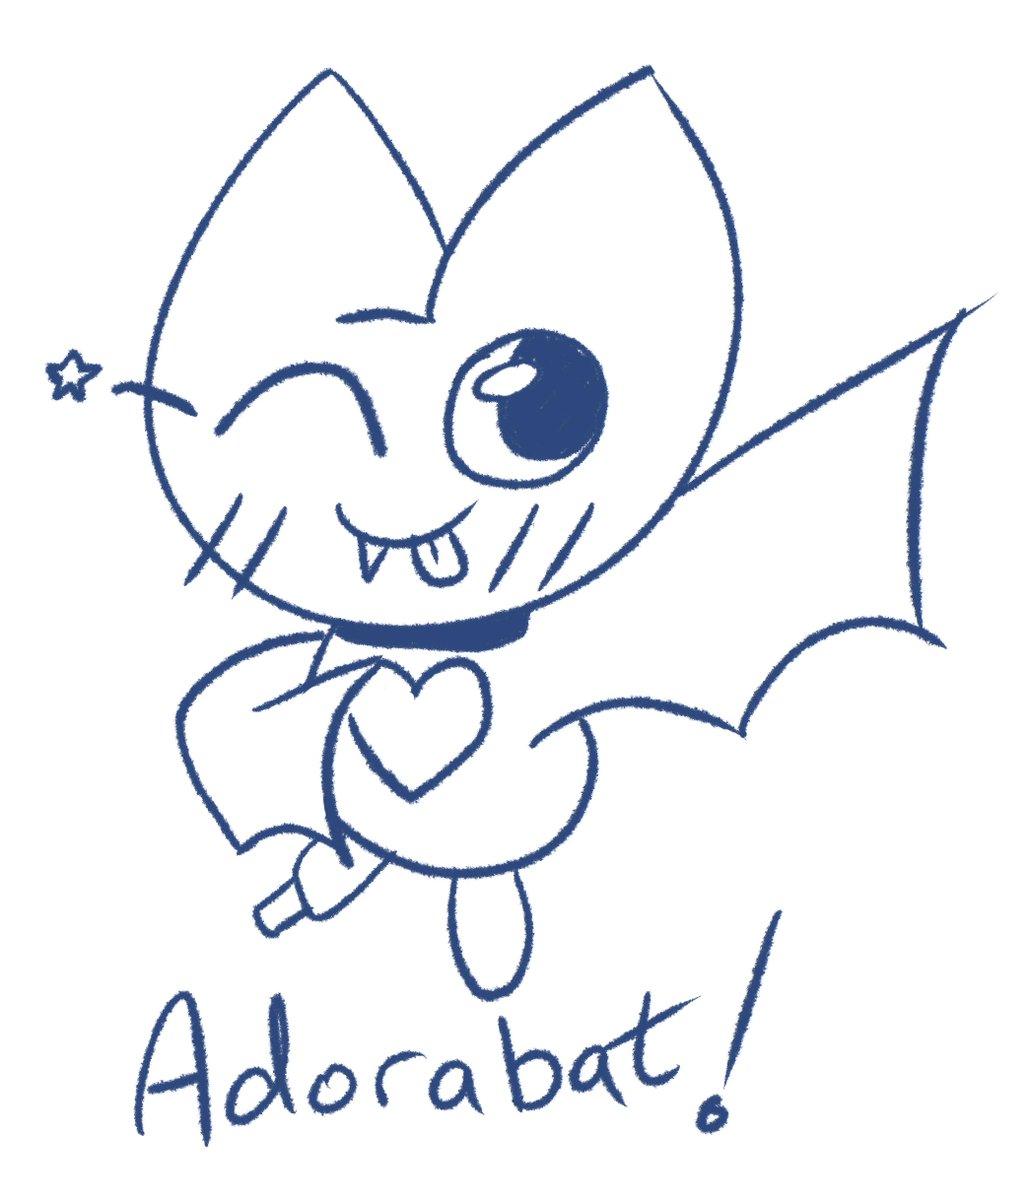 Jill Petal Crash Out Now On Twitter I M Only 5 Episodes Into Mao Mao But I Would Die For Adorabat Baby Baby Girl Here's a picture of adorabat as a baby with her parents. twitter